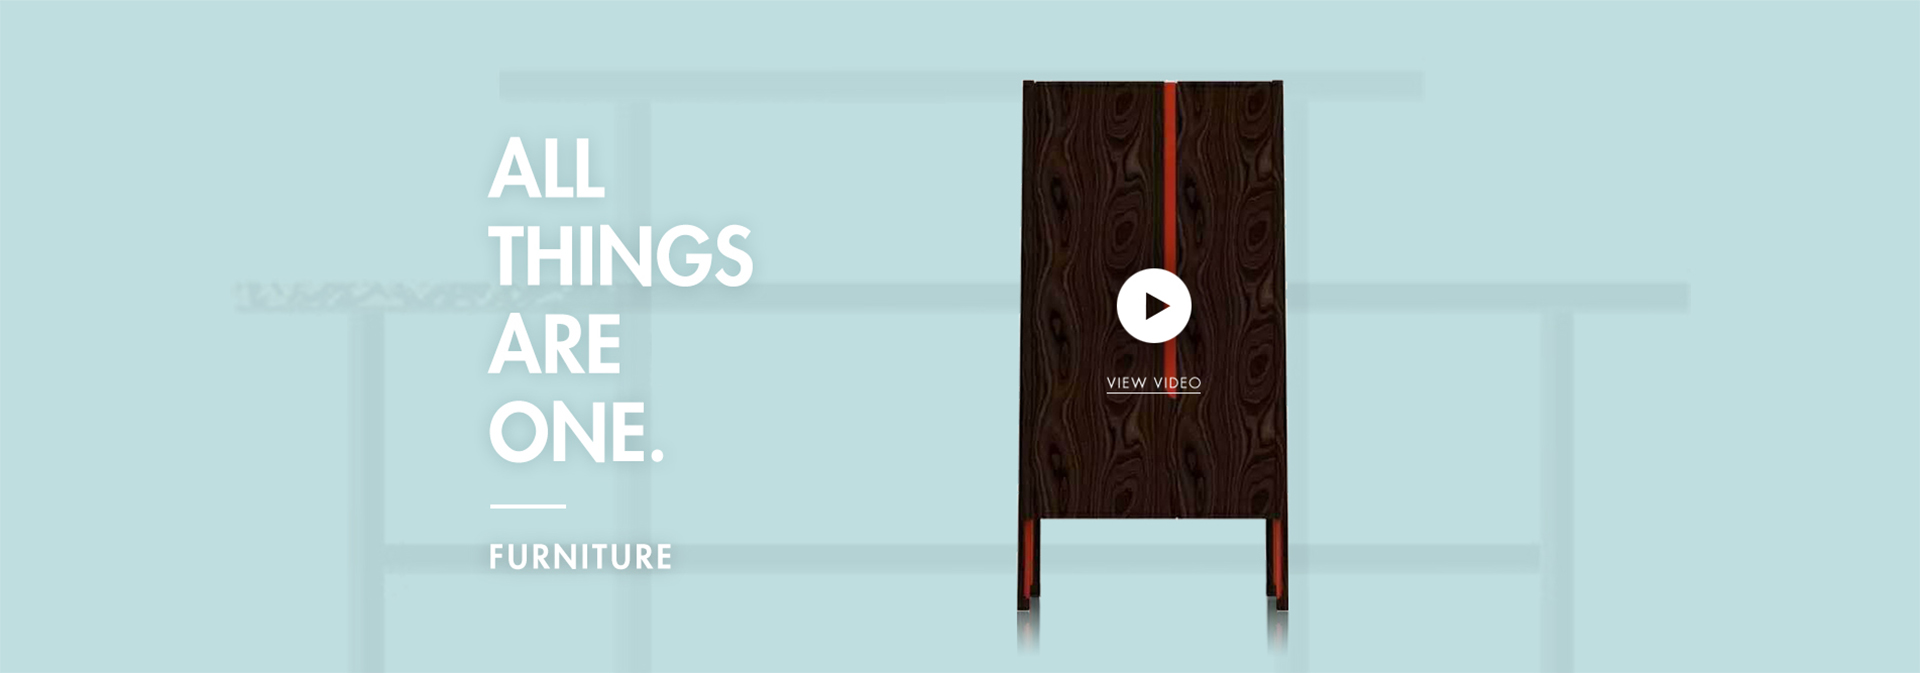 WEI YEE's Furniture|All Things are One